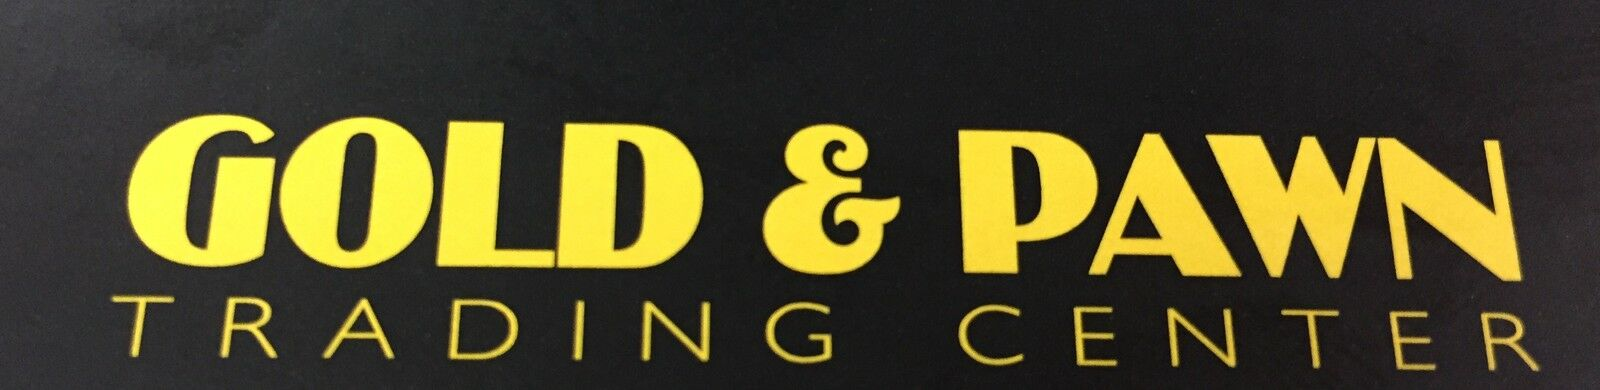 Gold & Pawn Trading Center